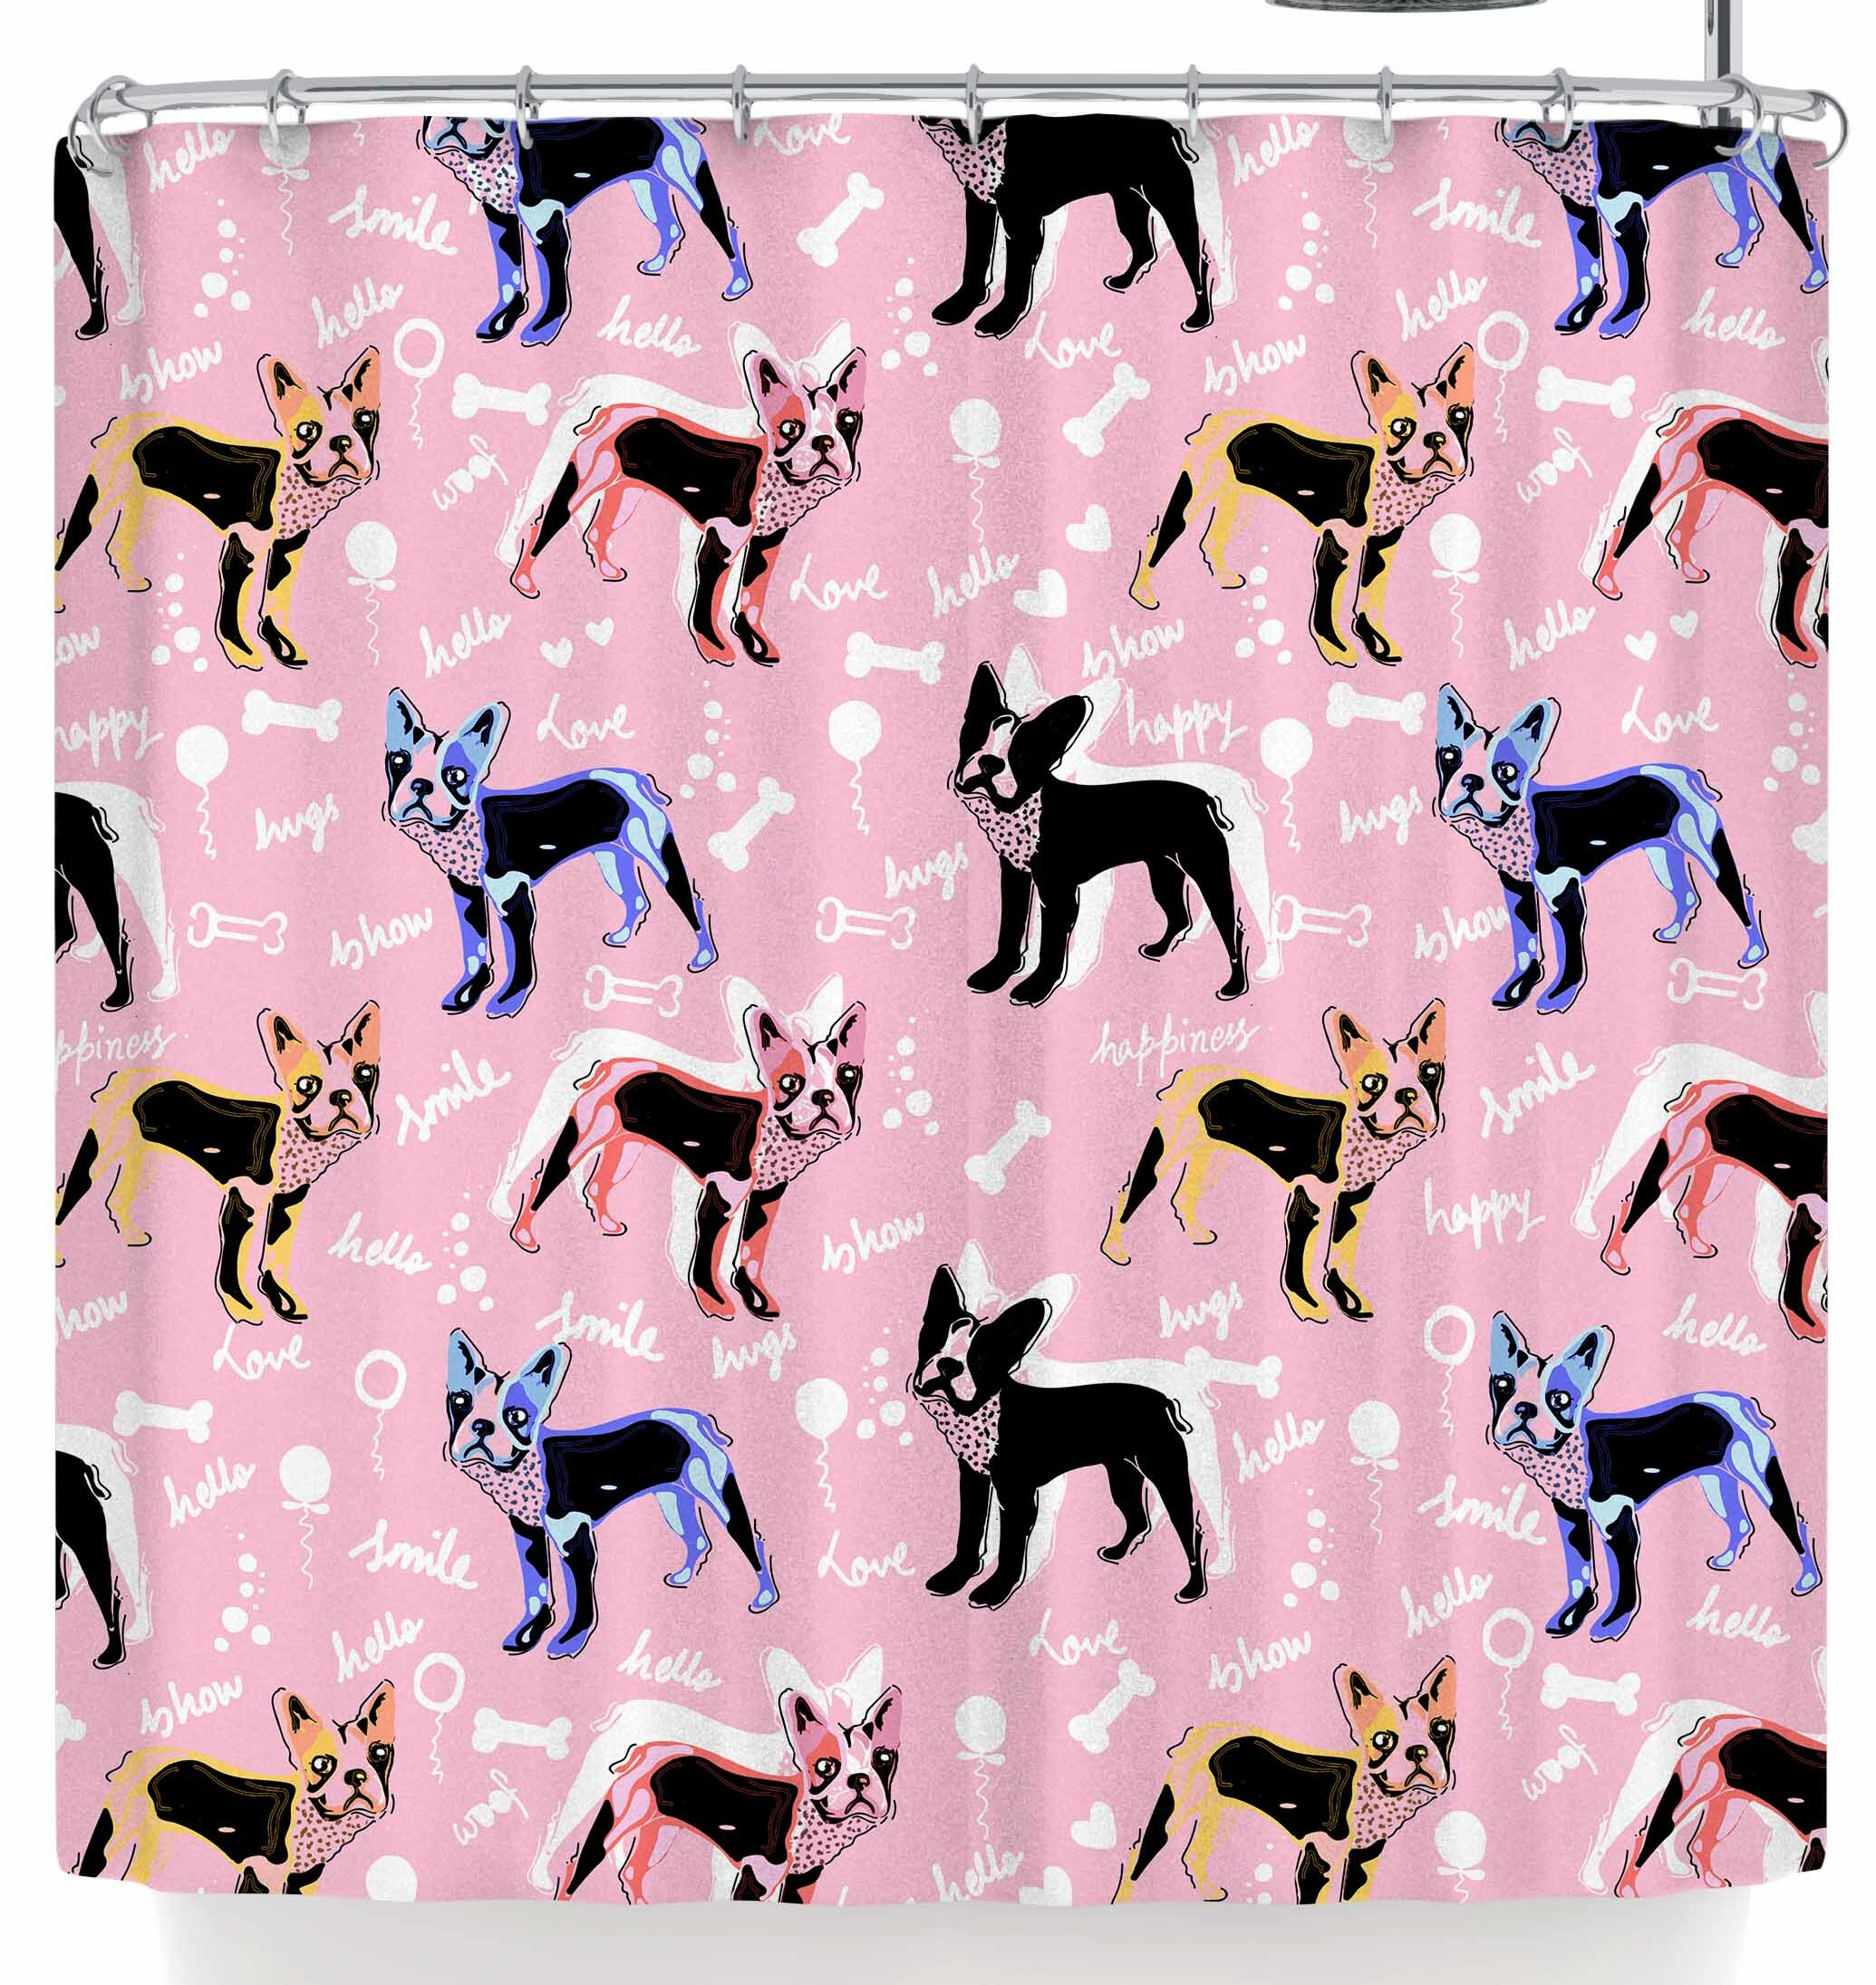 East Urban Home Mukta Lata Barua French Bulldogs Shower Curtain